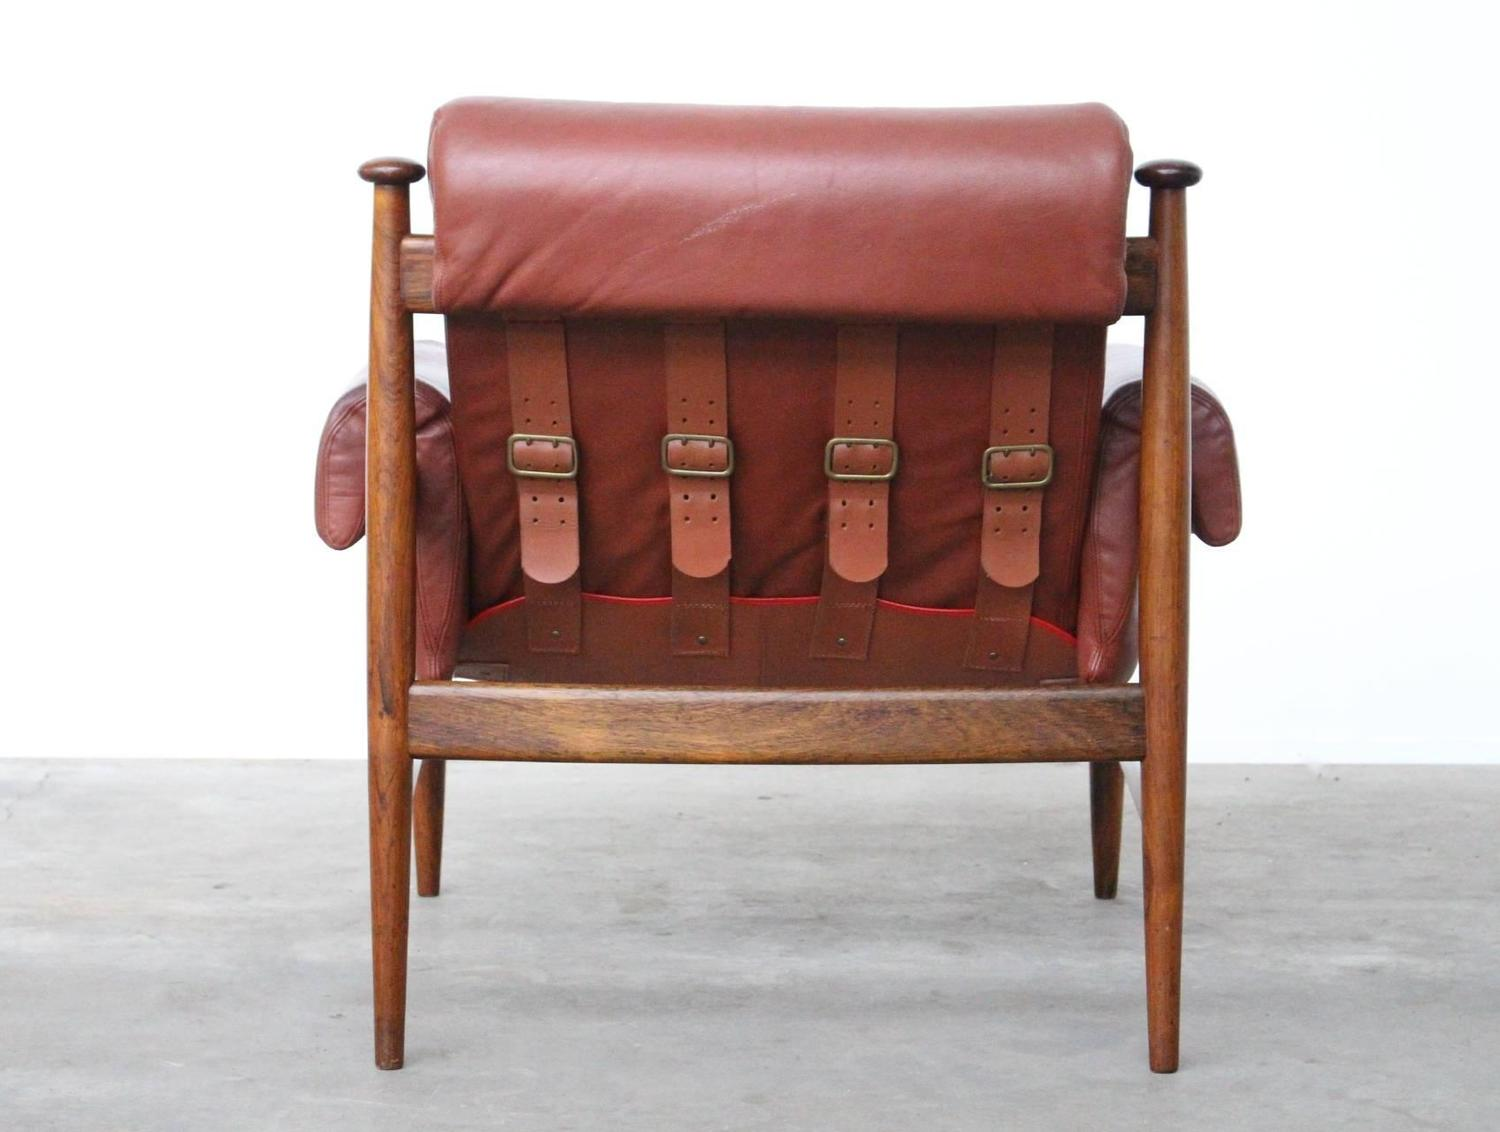 ... Amiral designed by Eric Merton for Ire Mobler For Sale at 1stdibs